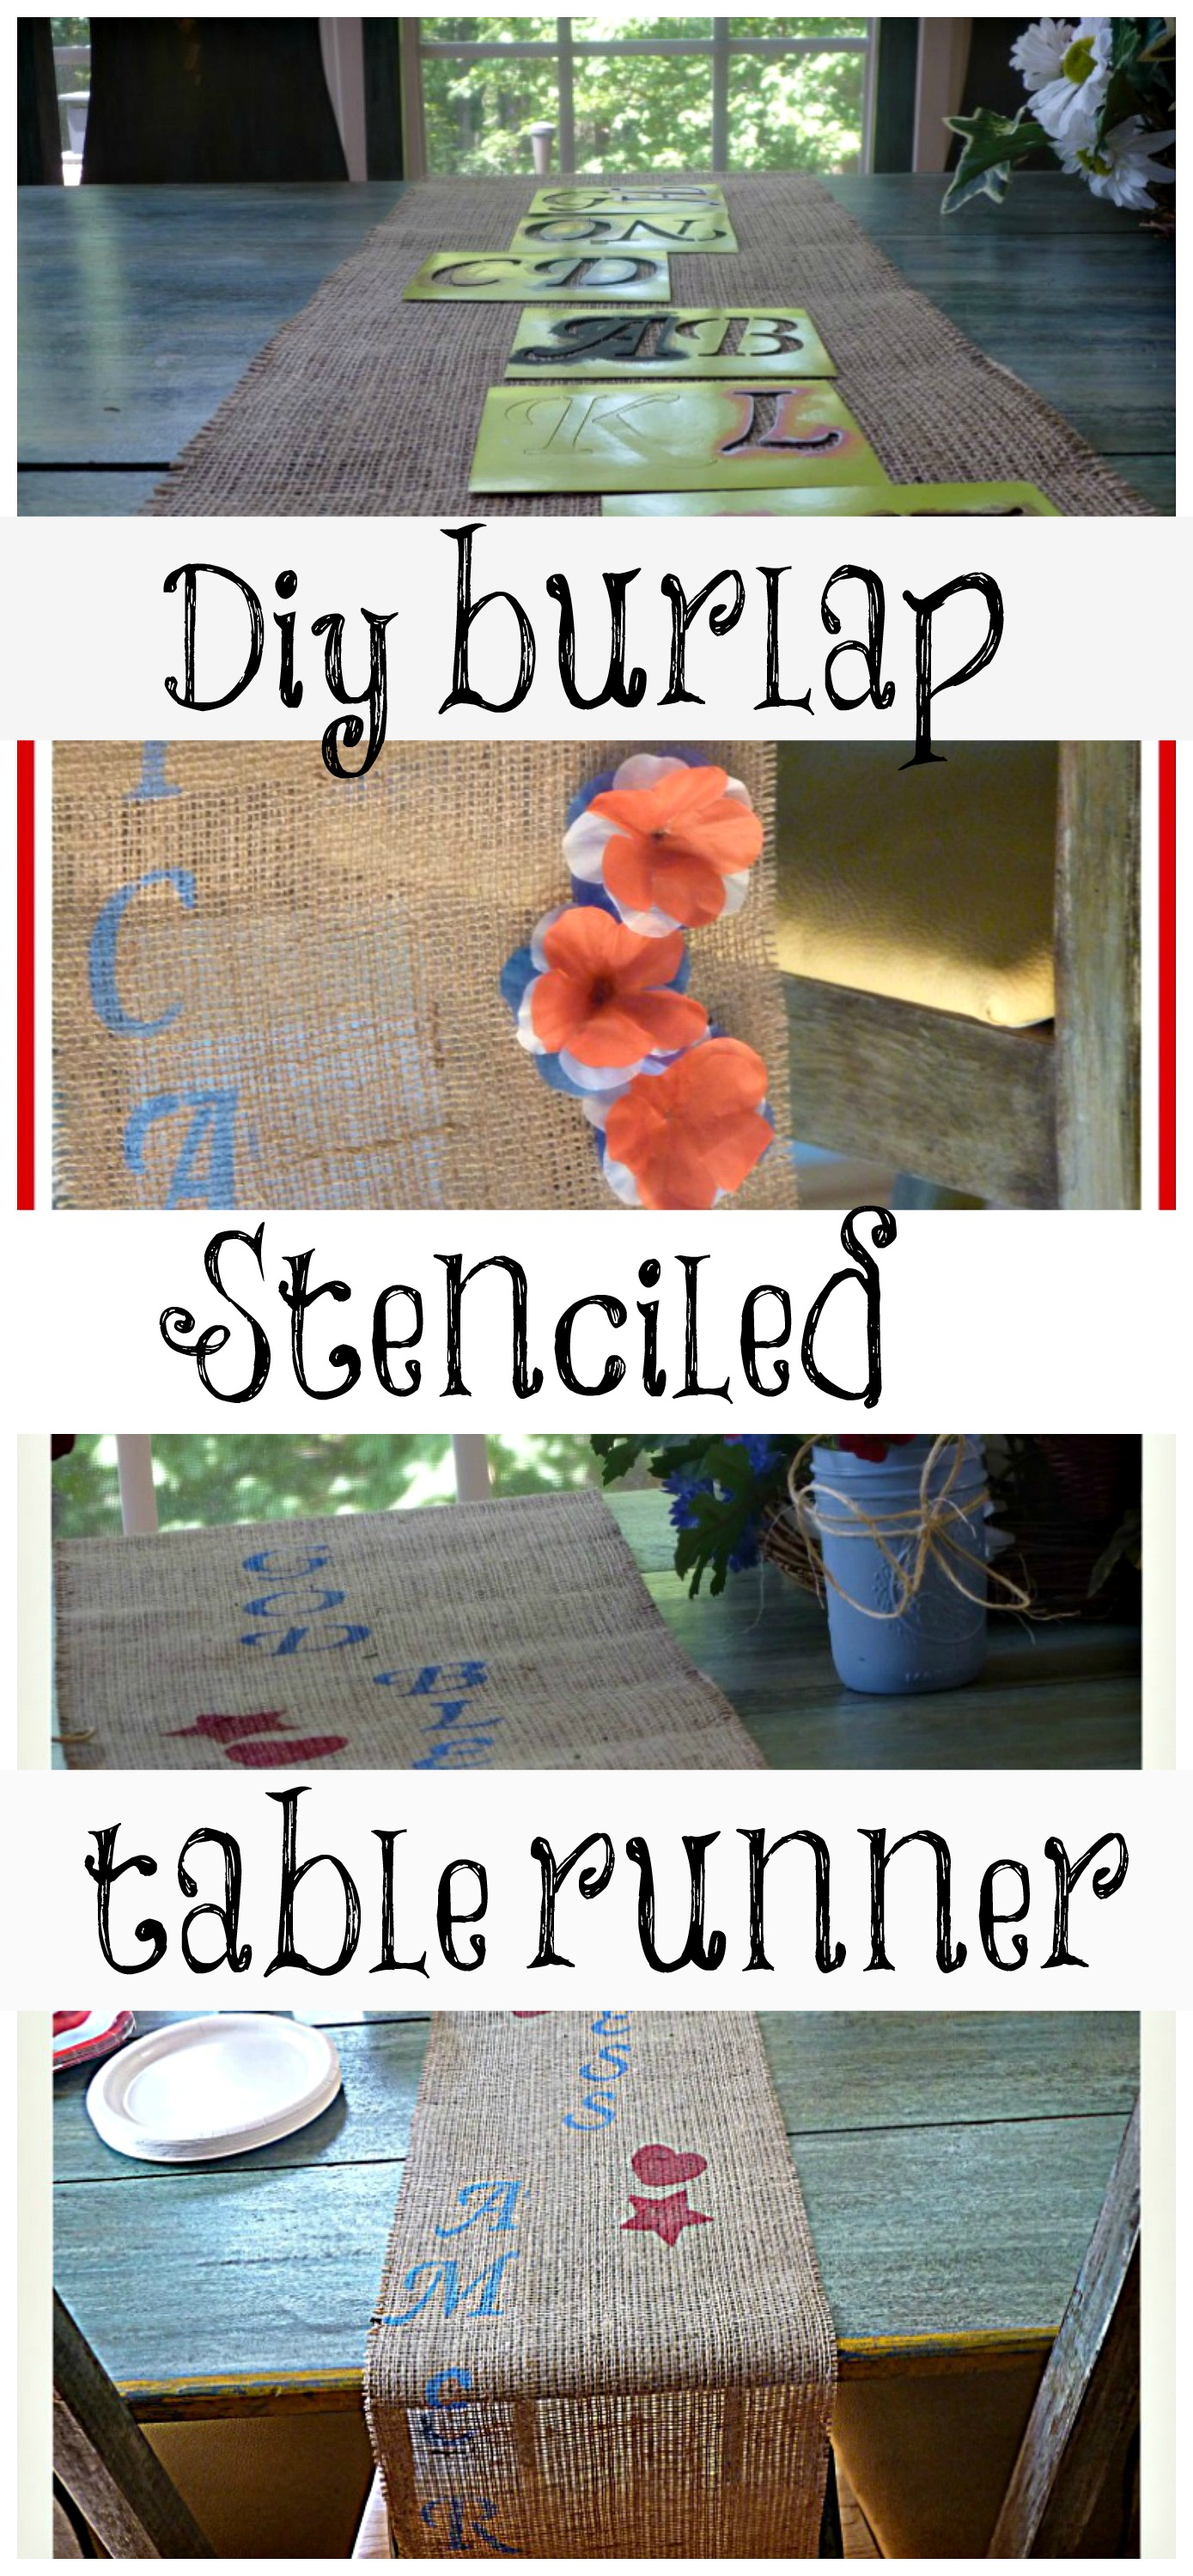 diy burlap table runner god bless america